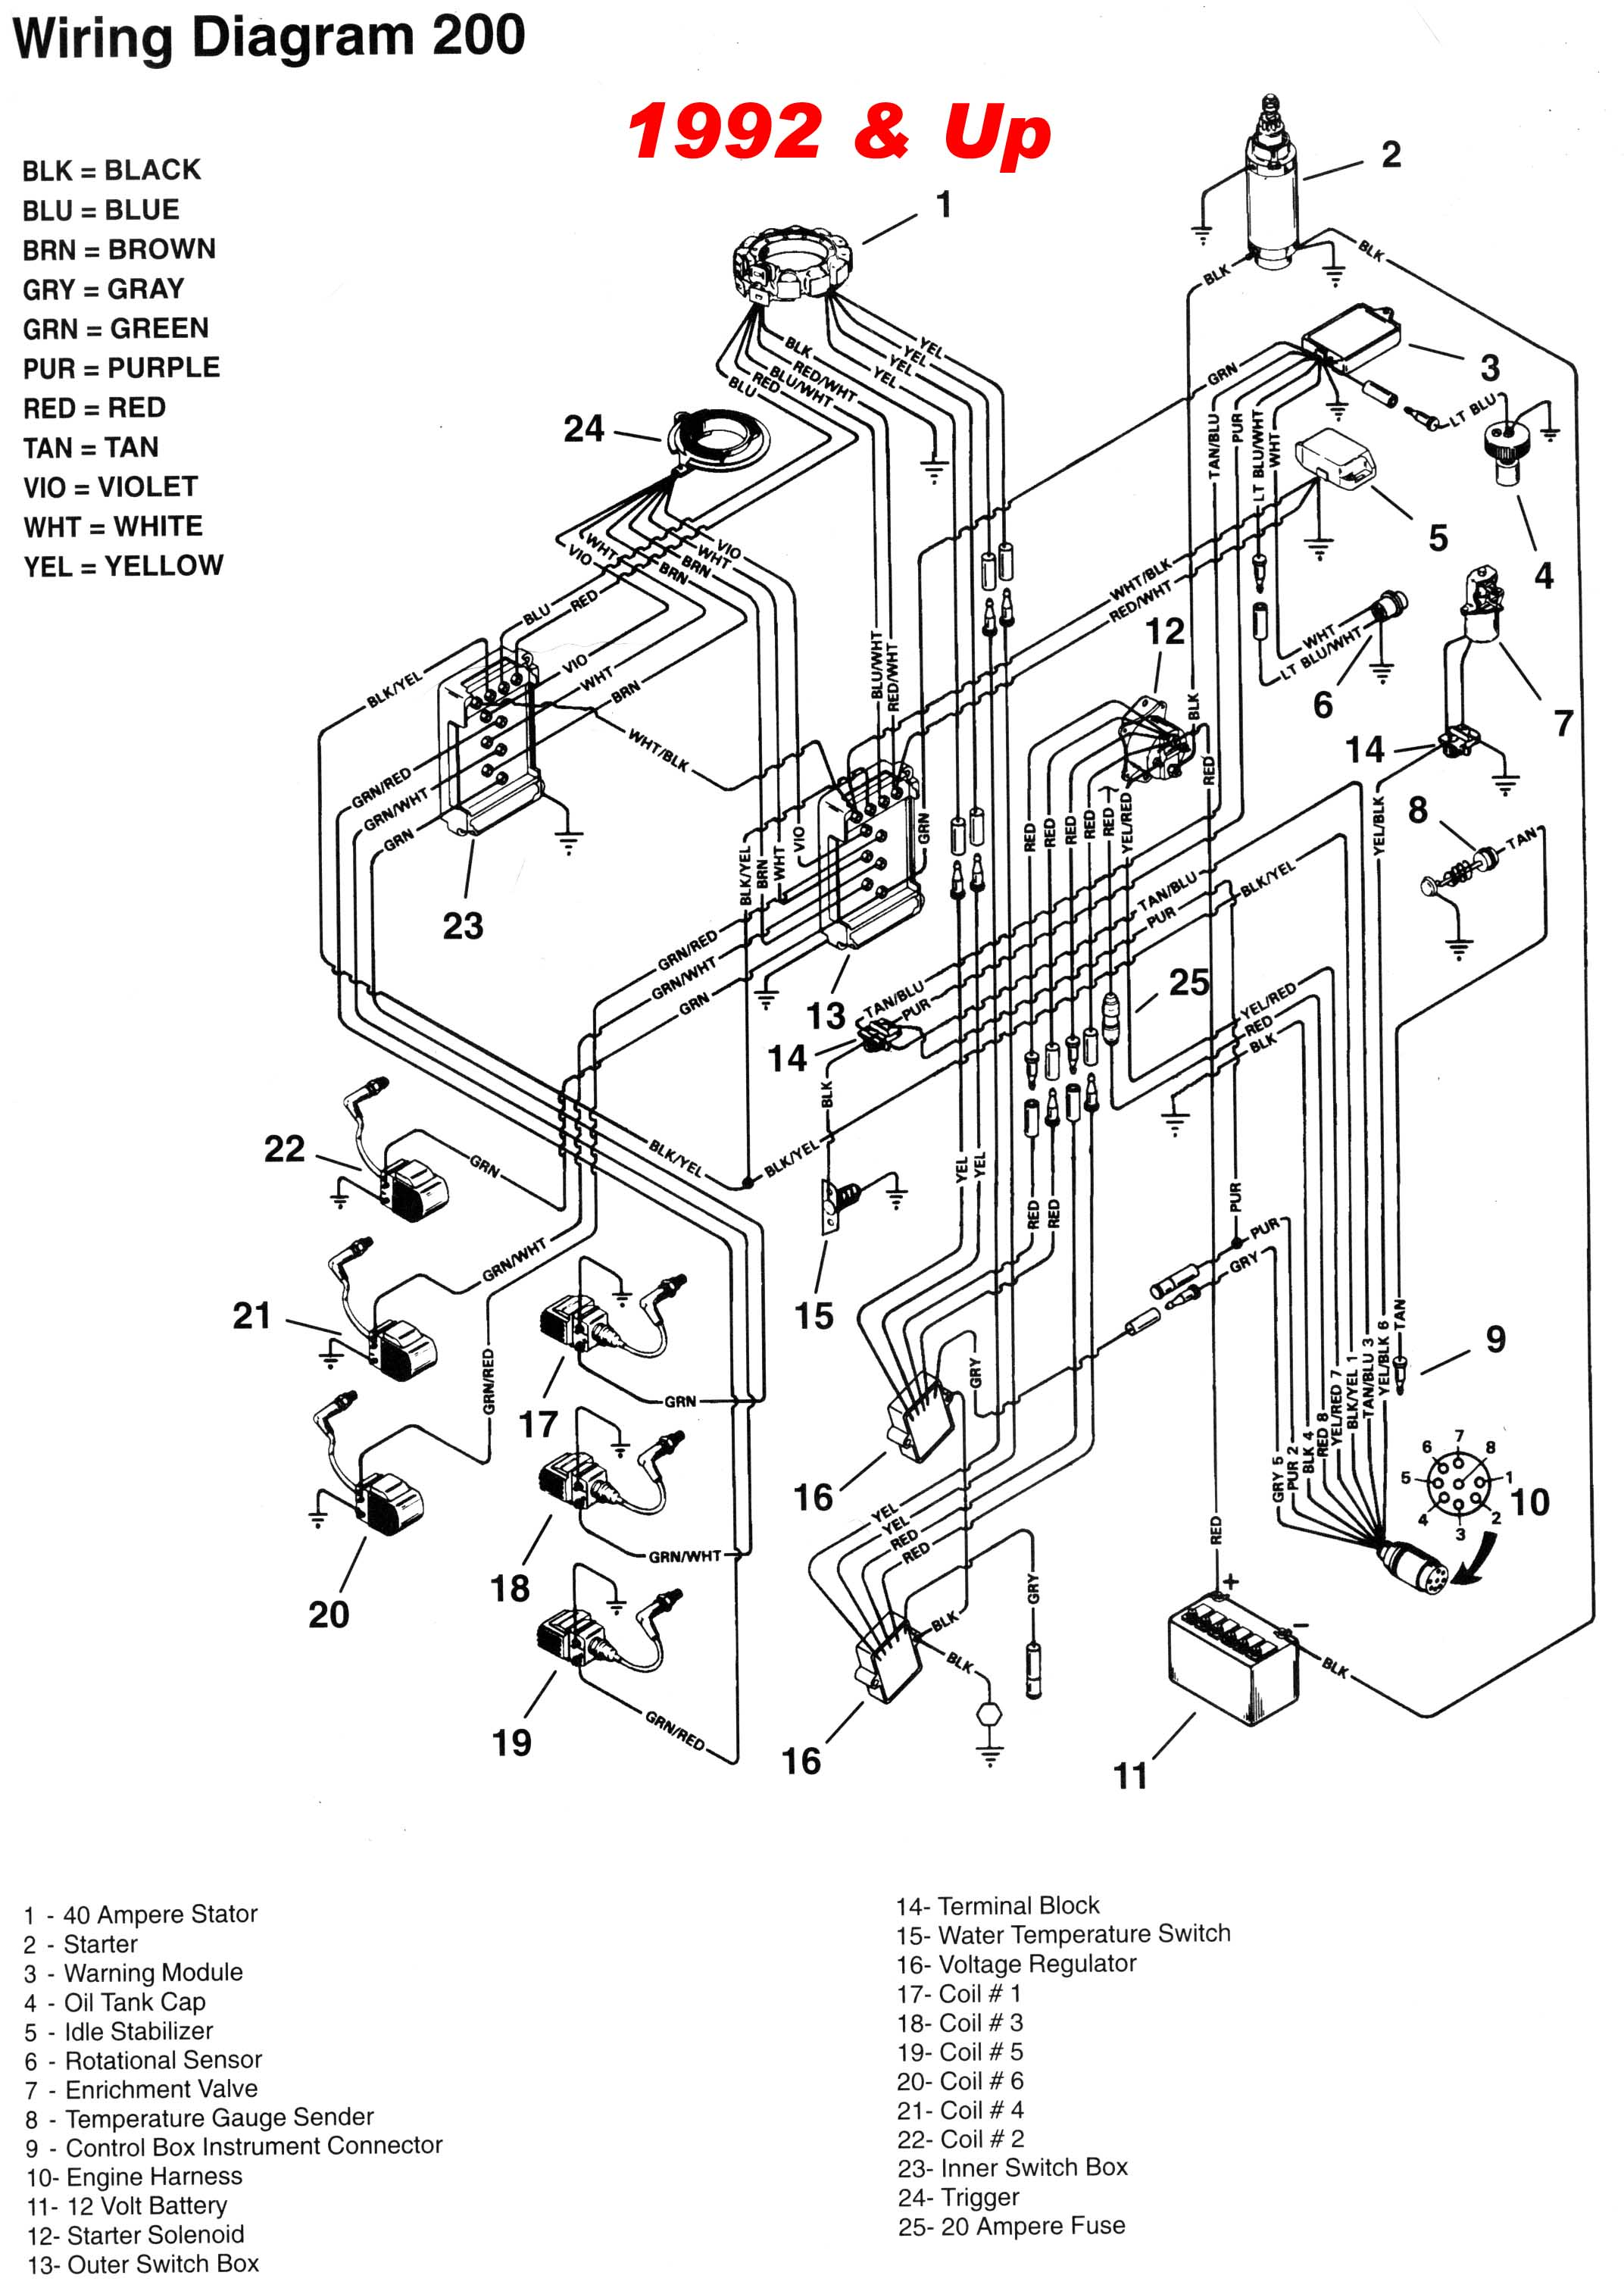 kenwood wiring harness diagram with Mercury on Perkins Genset Engine besides Mercury furthermore MediaExponent Auto PC Android 44 2 DIN Yleismalli together with 1994 Infiniti J30 Radio Wiring Diagram furthermore Raz2.